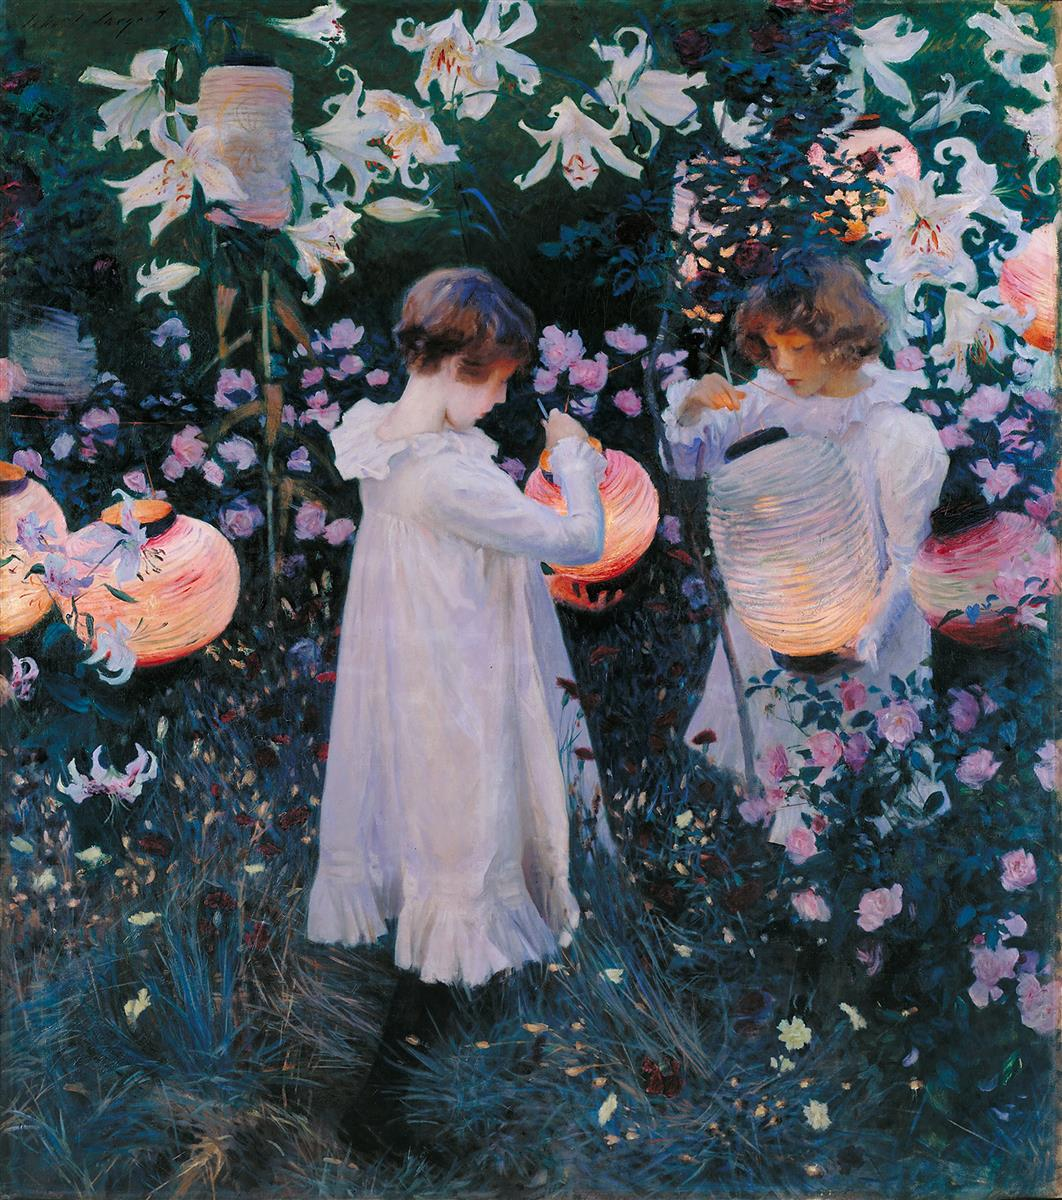 Carnation, Lily, Lily, Rose  Oil on Canvas by John Singer Sargent, 68.5 × 60.5""